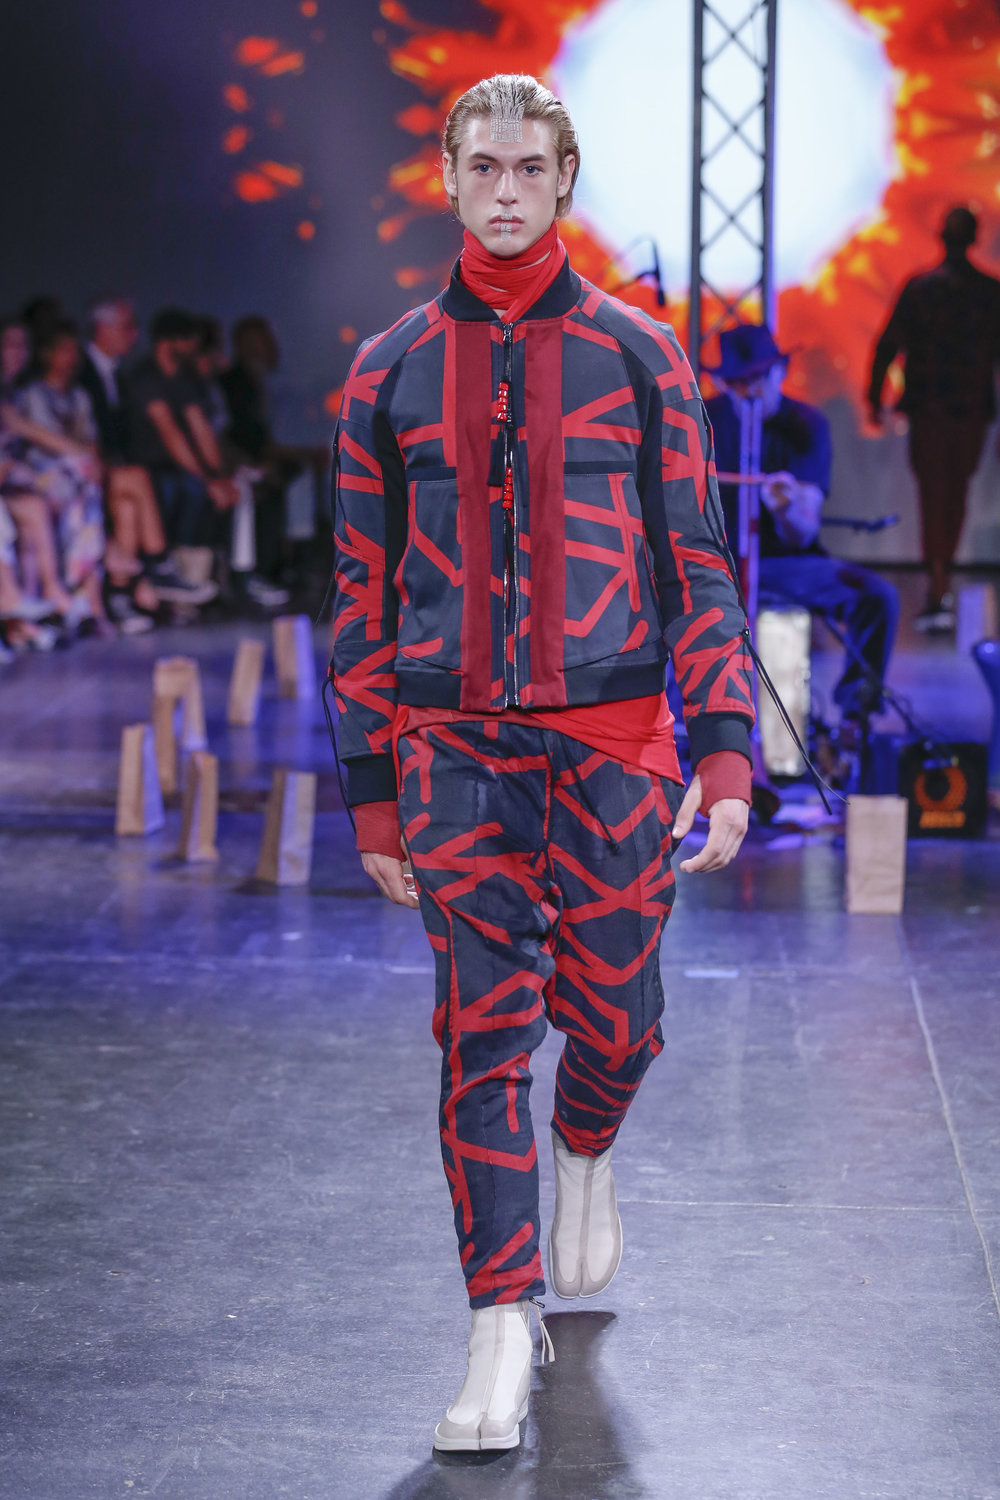 LOOK 22   ARC Flight Jacket  / Phantom Print   ARC Ankara Pant  / Phantom Print   ARC Apollo Tabi Boot   .  .